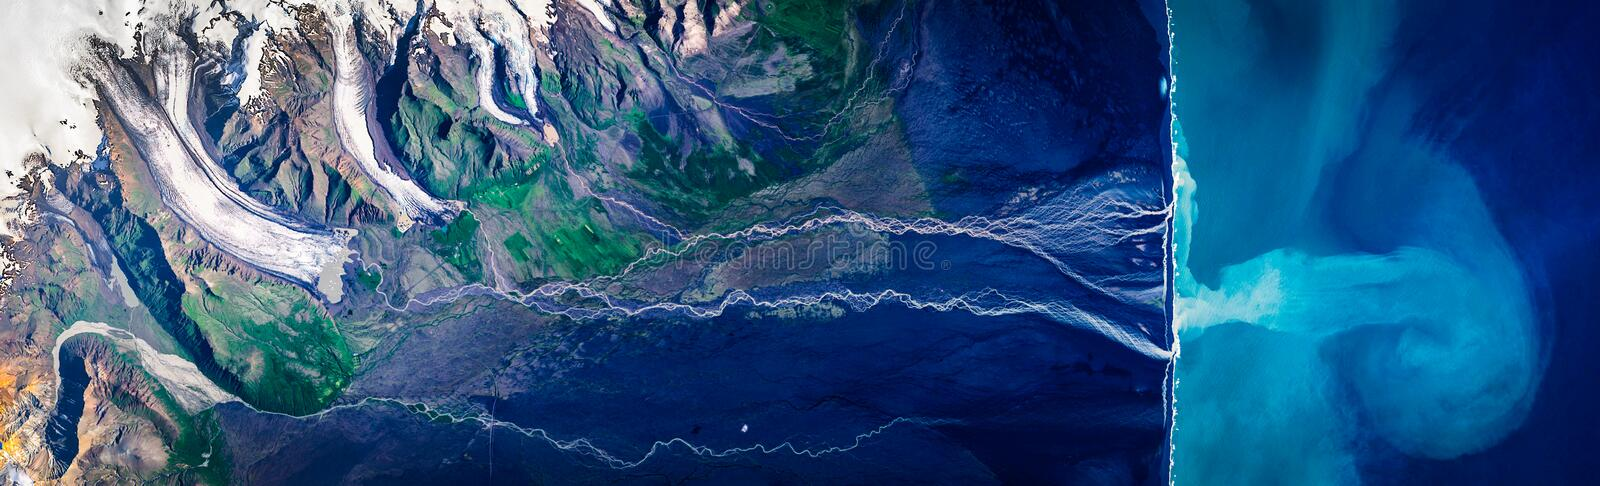 High resolution satellite image of calving Vatnajökull glacier, Iceland, from above, aerial view royalty free stock photo